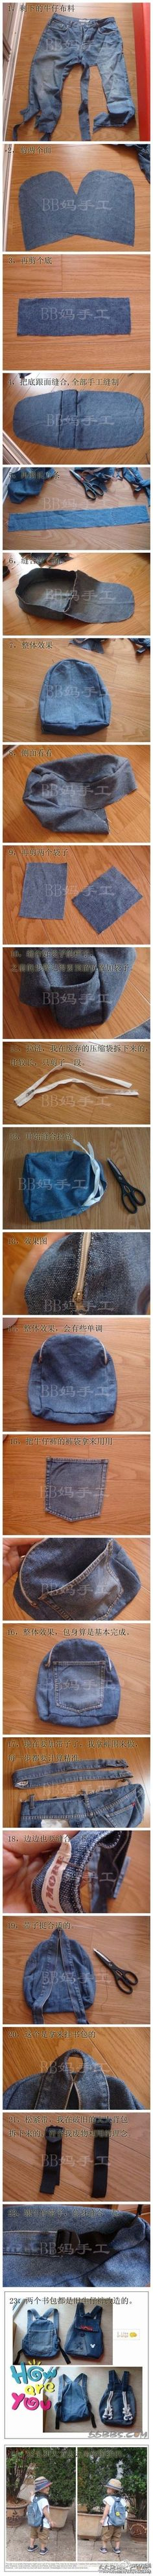 Recycle old jeans!